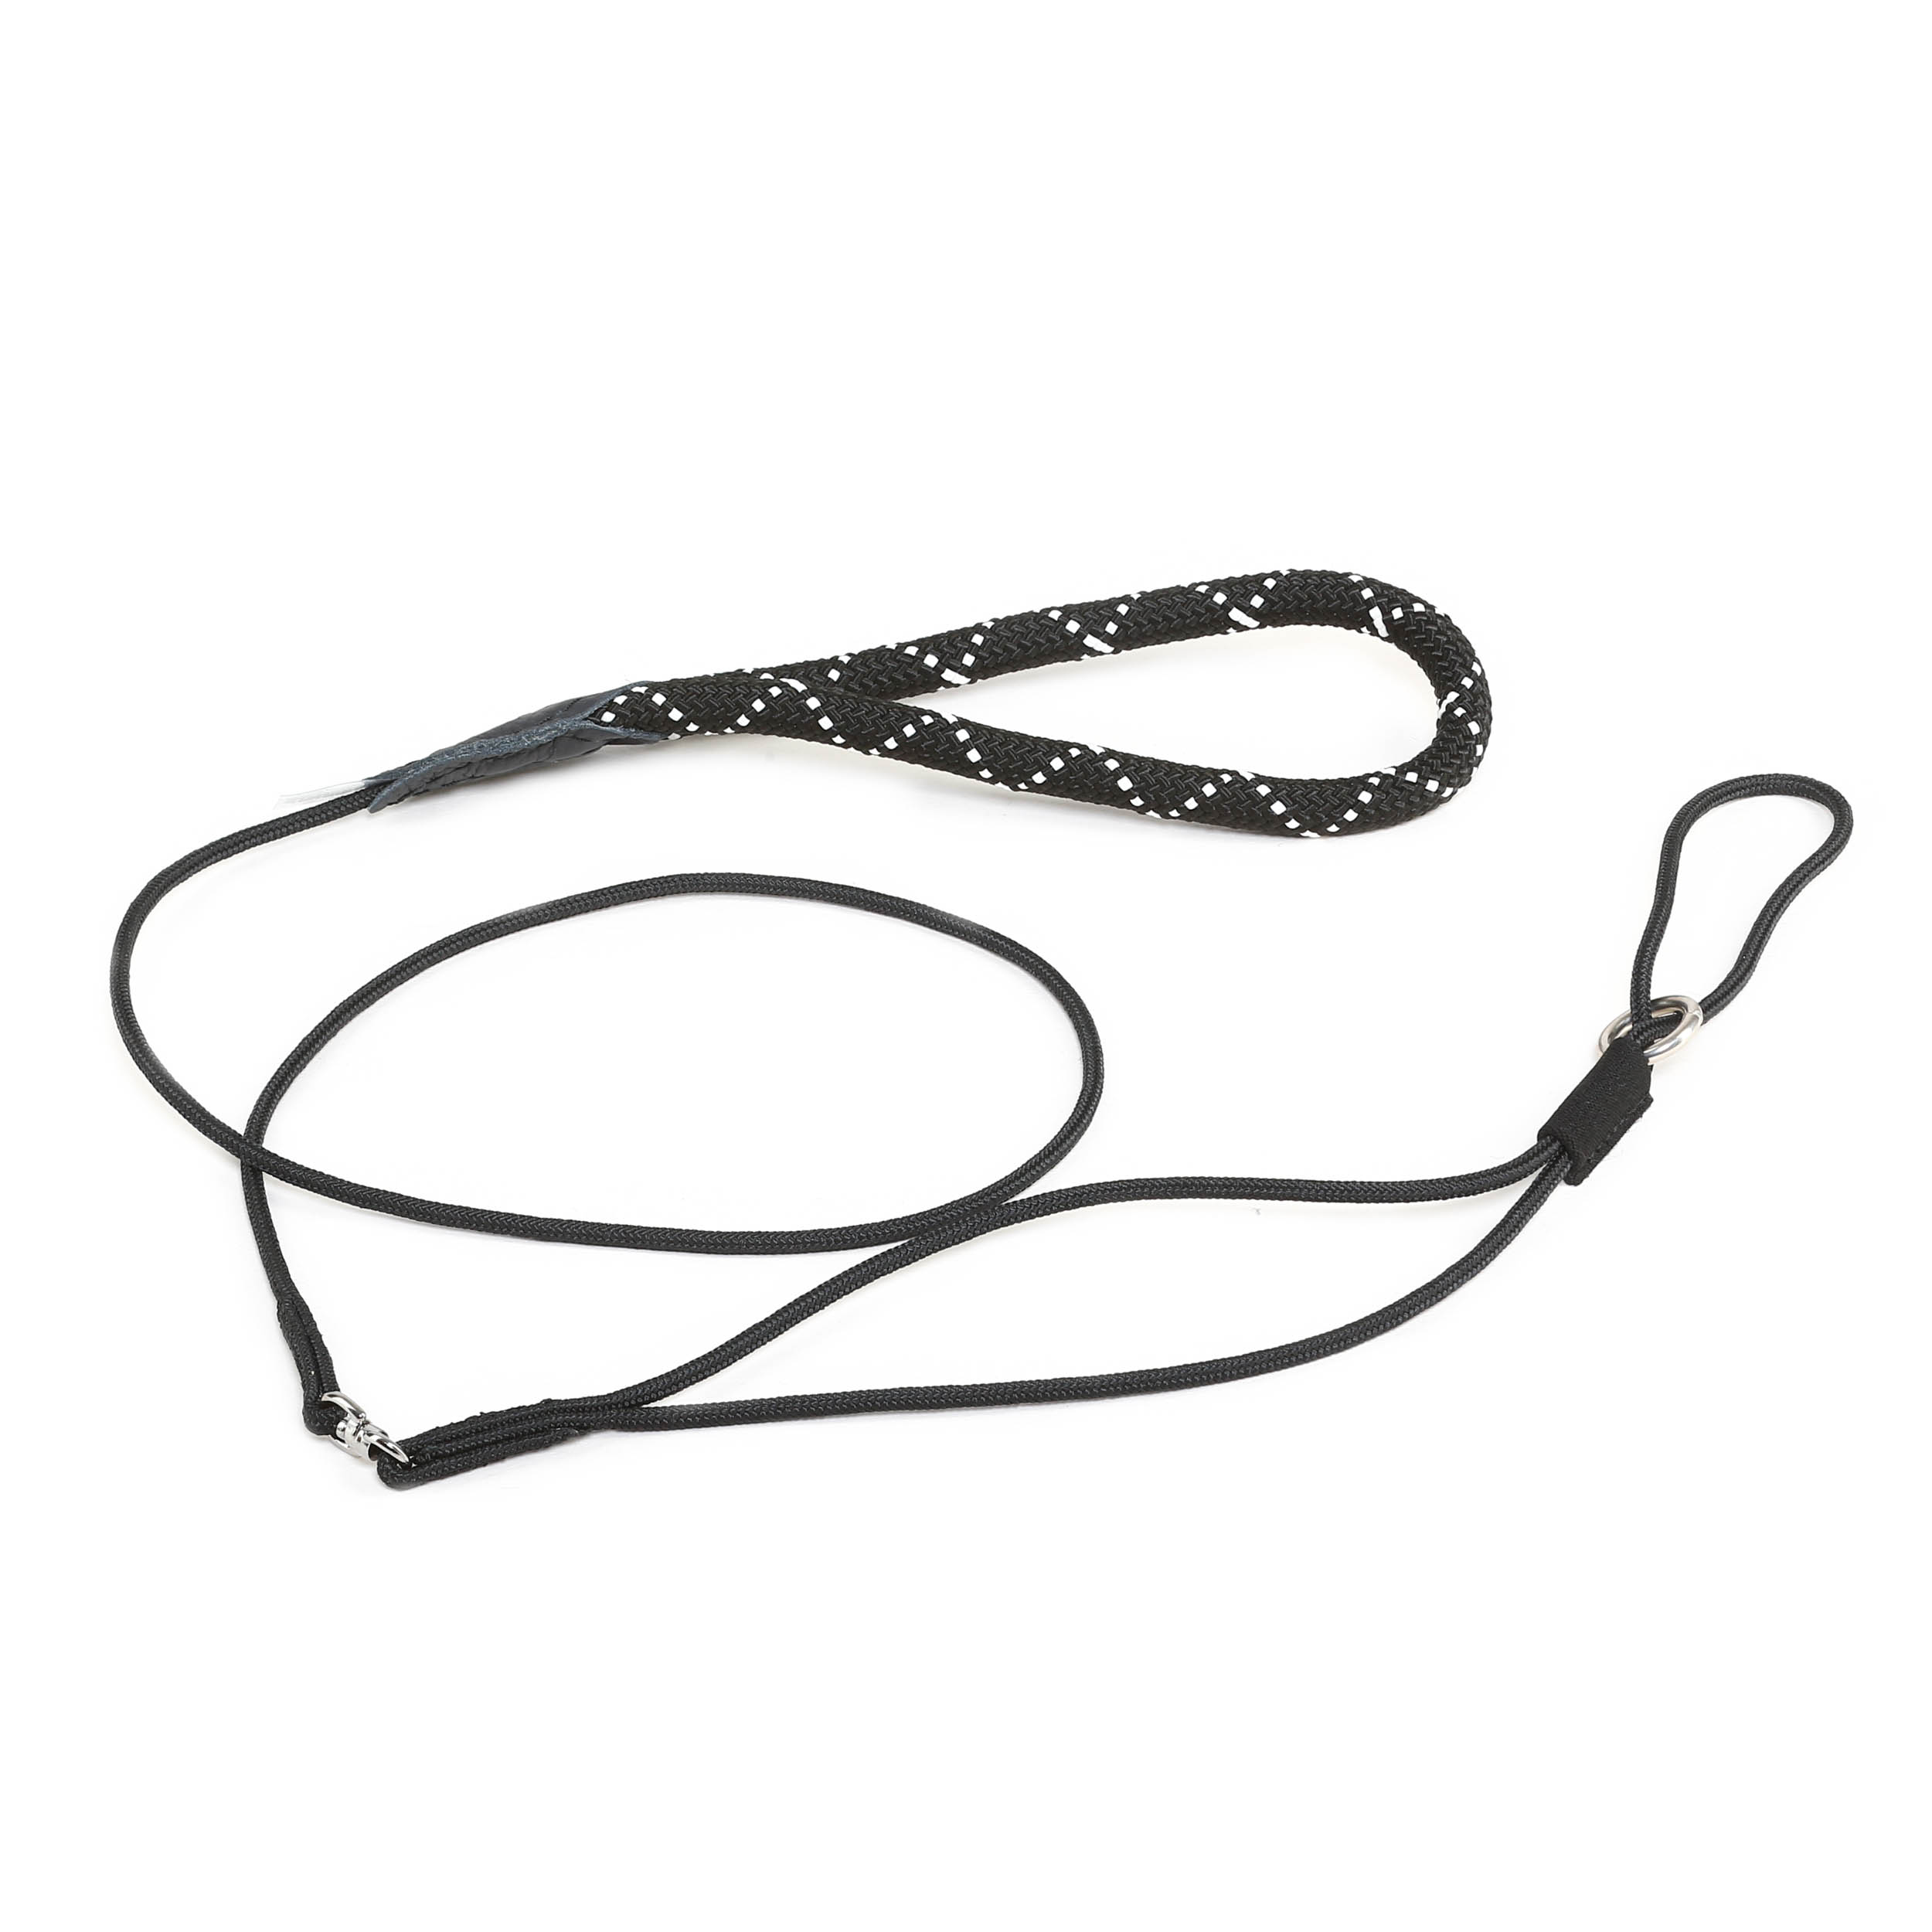 Show Leashes For Dogs